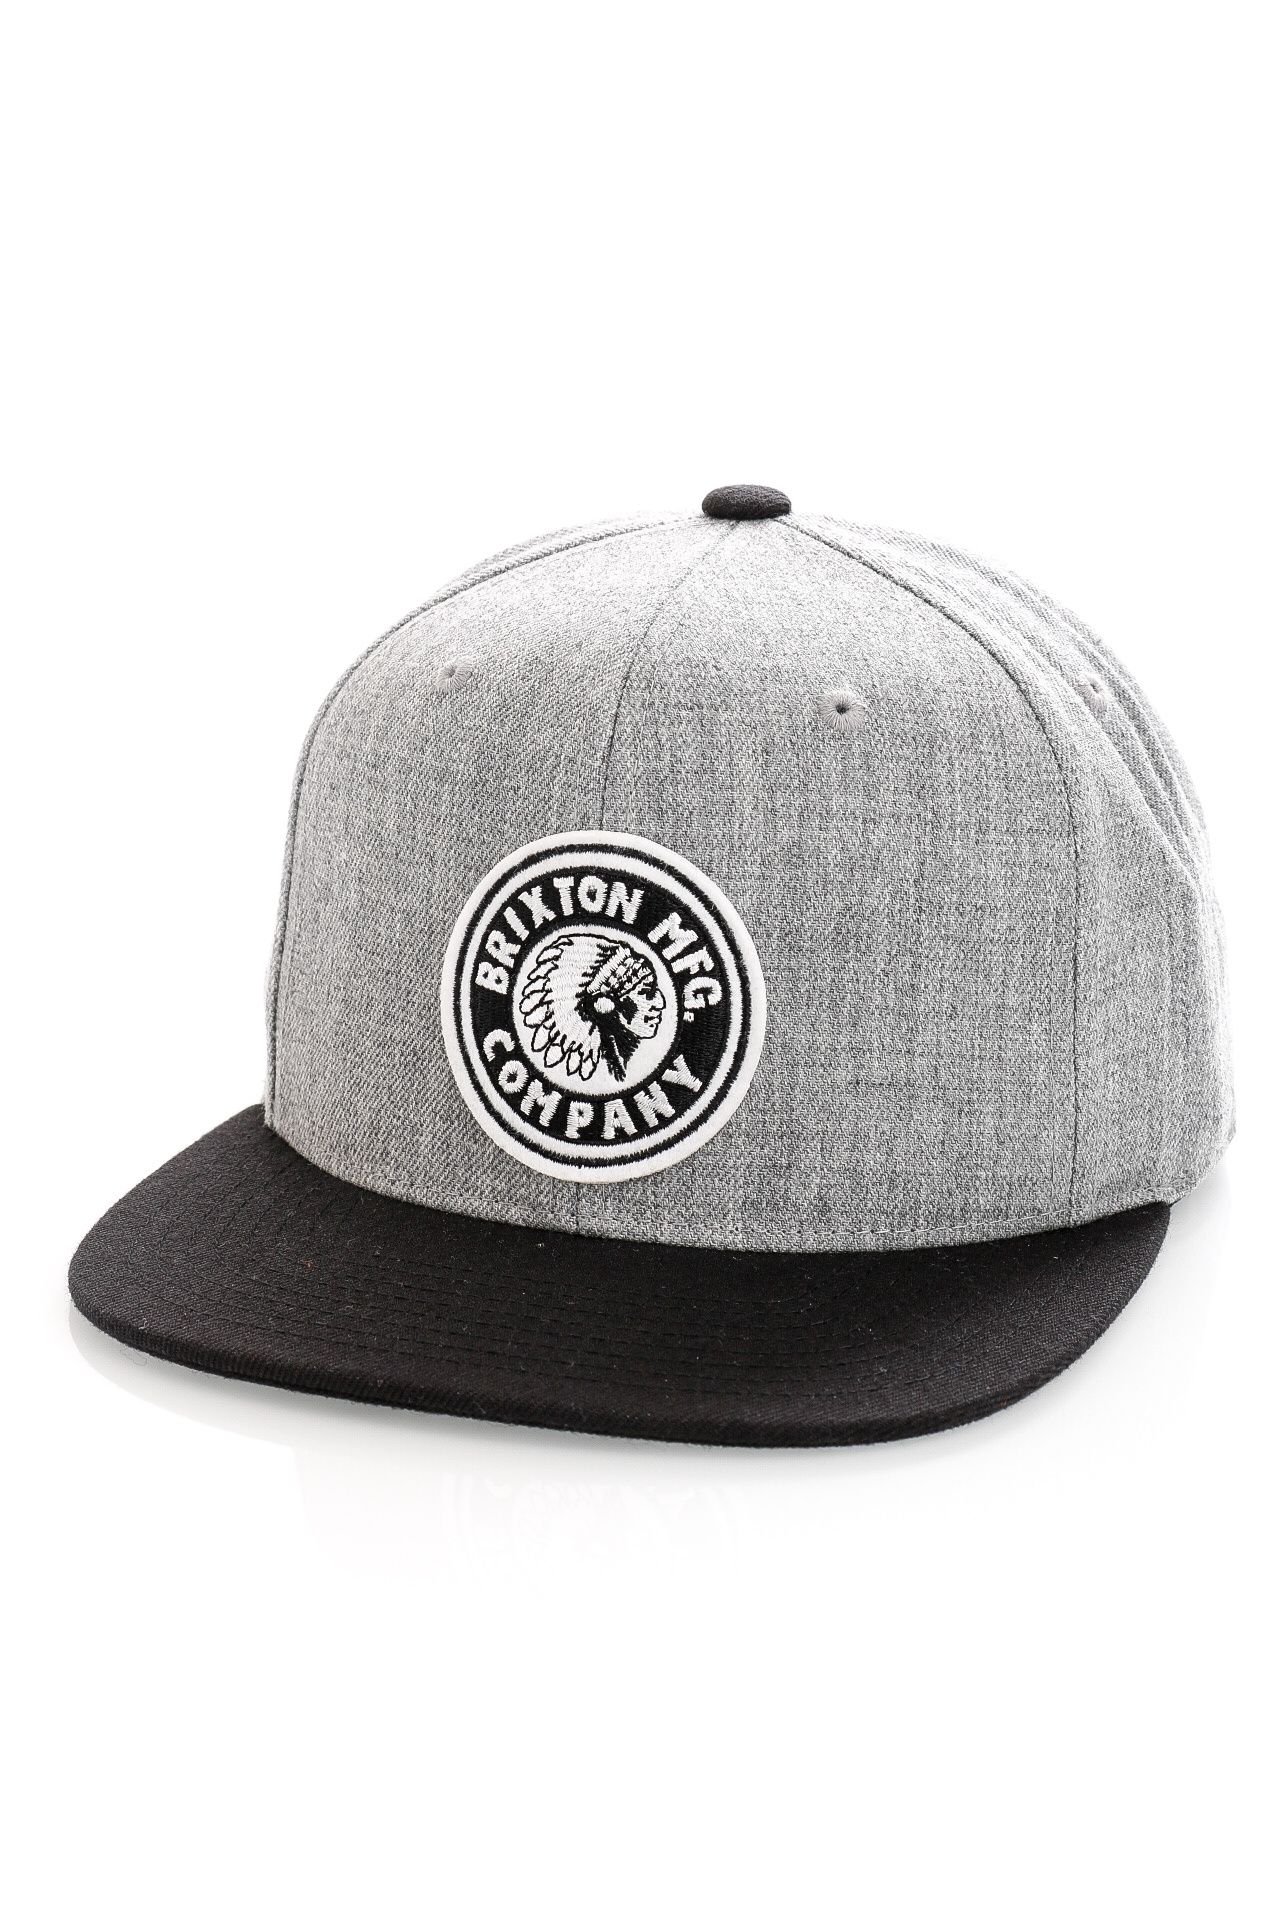 Afbeelding van Brixton Snapback Rival MP Snapback Heather Grey/Black/Black 10856